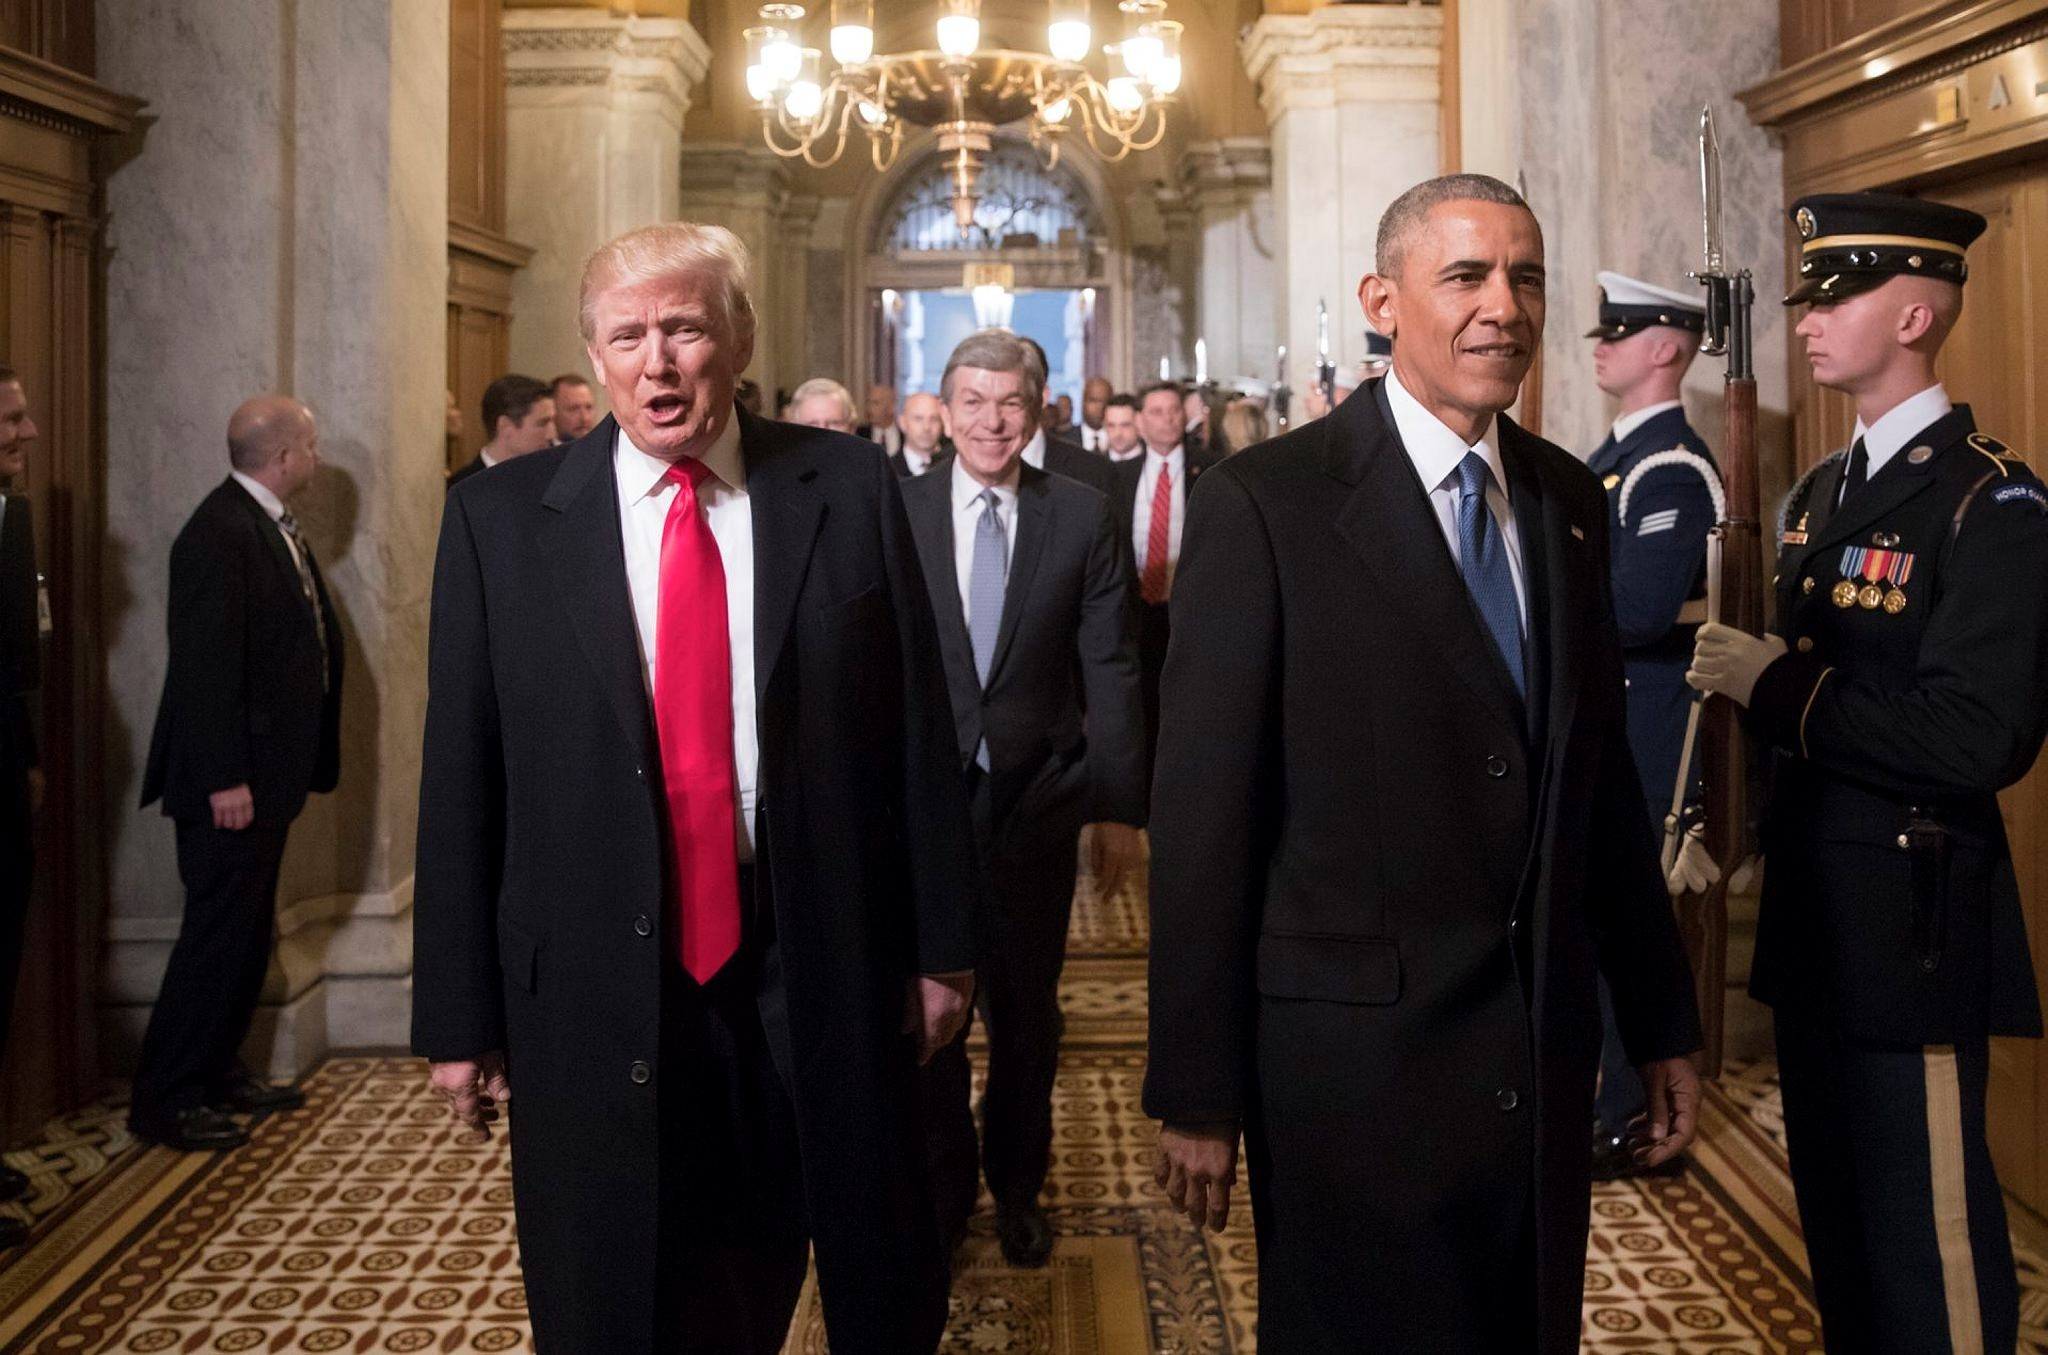 Trump and US President Barack Obama arrive for Trump's inauguration ceremony at the Capitol in Washington, DC, USA, 20 January 2017. (EPA Photo)